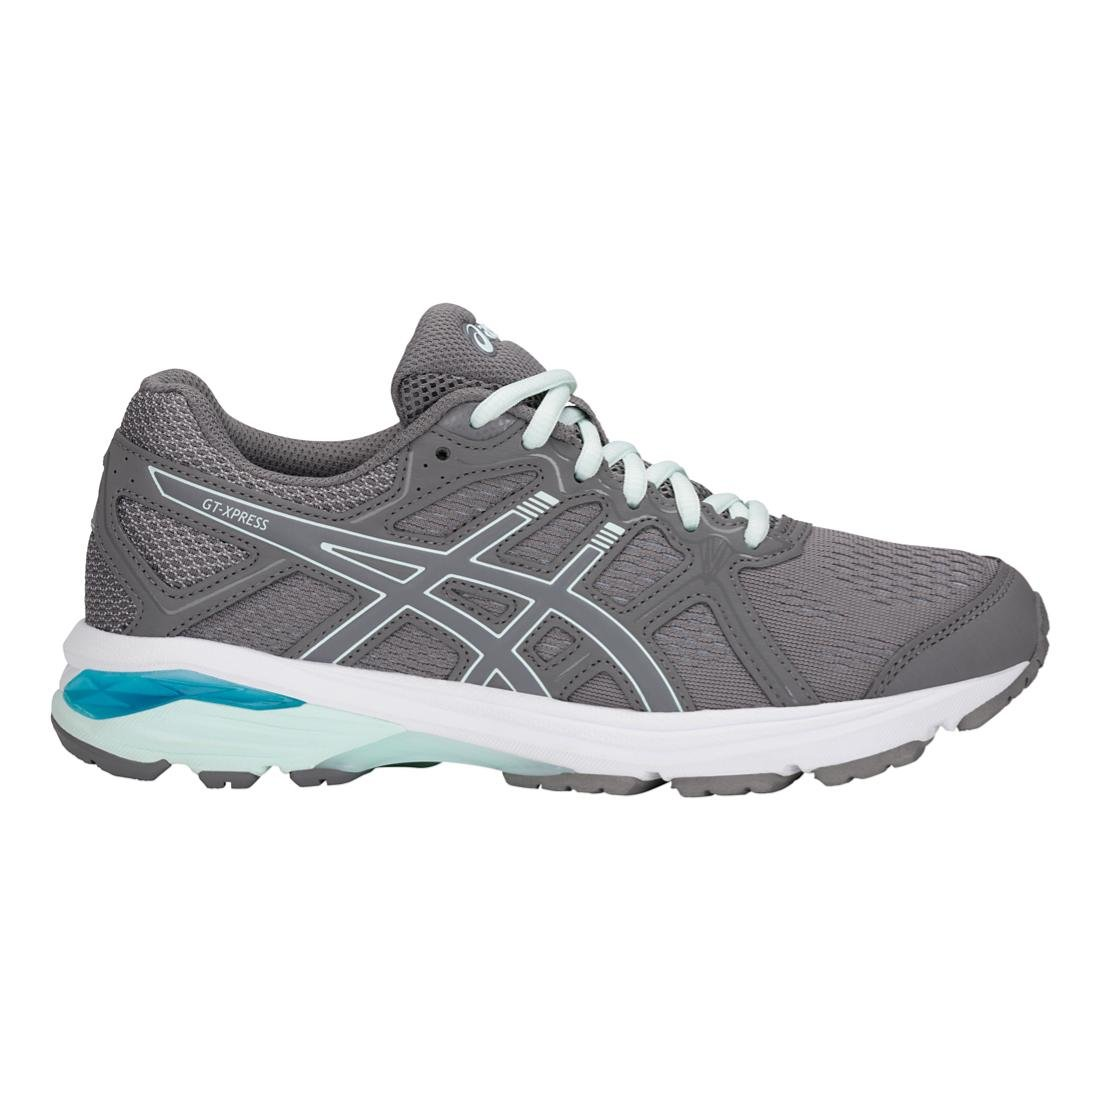 ASICS Women's GT-Xpress Running Shoe B077NHJGWZ 6.5 D US|Carbon/Soothin Sea